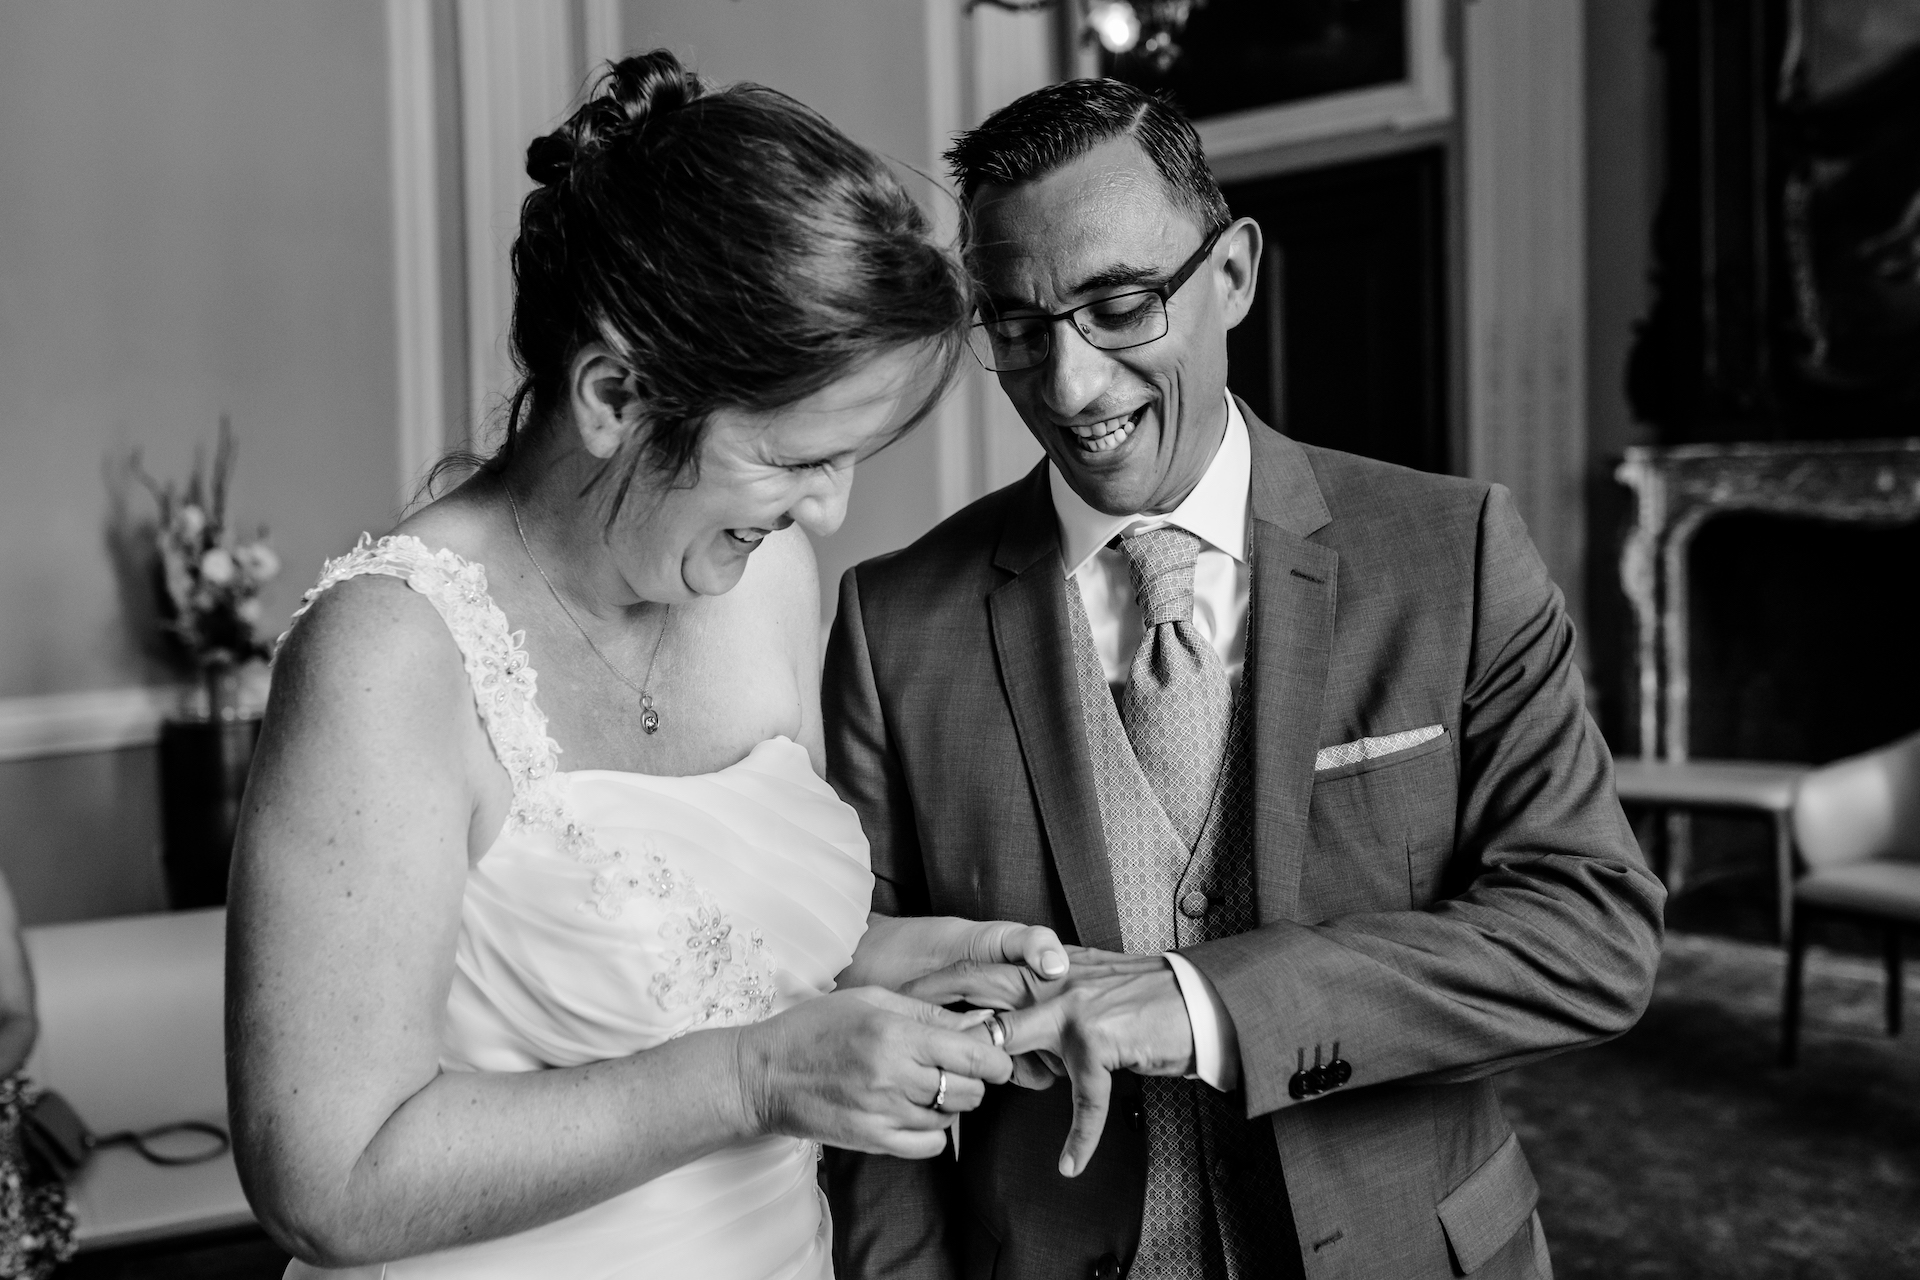 City Hall of Sint-Truiden, Brussels, Belgium Elopement Picture | The couple laugh as she tries to put his wedding ring on his finger